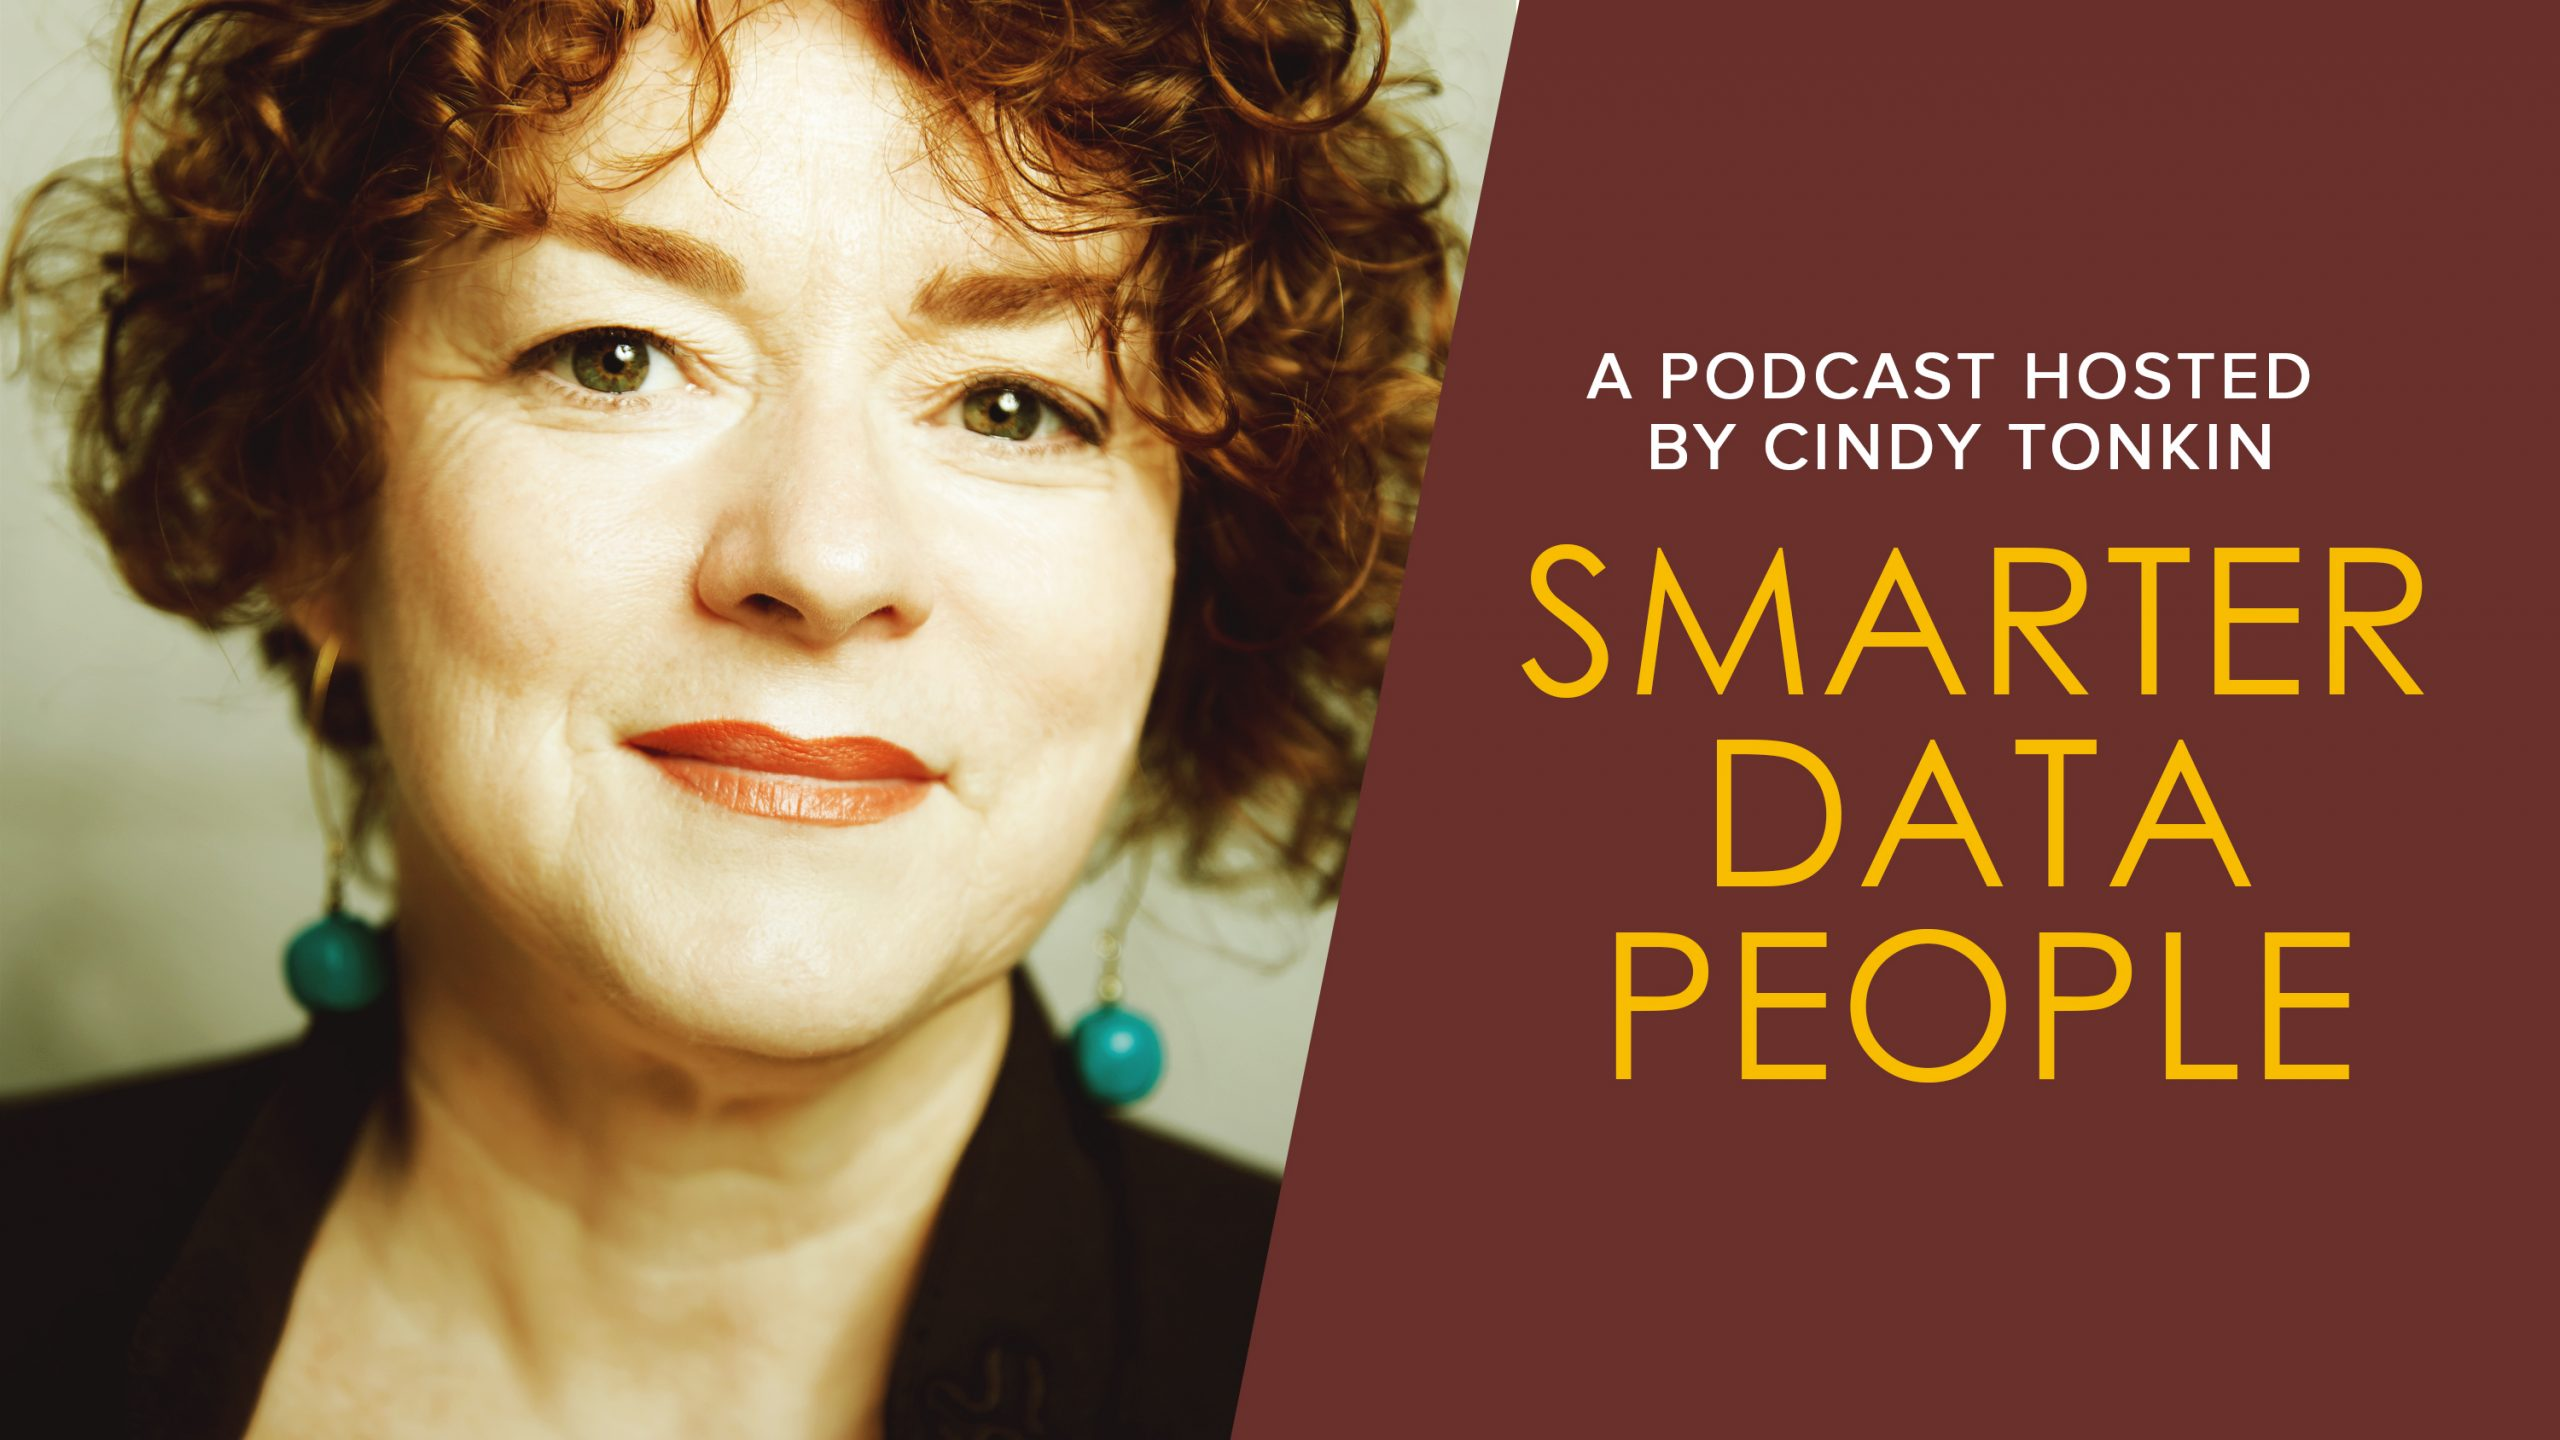 Christina Igasto on Smarter Data People Podcast